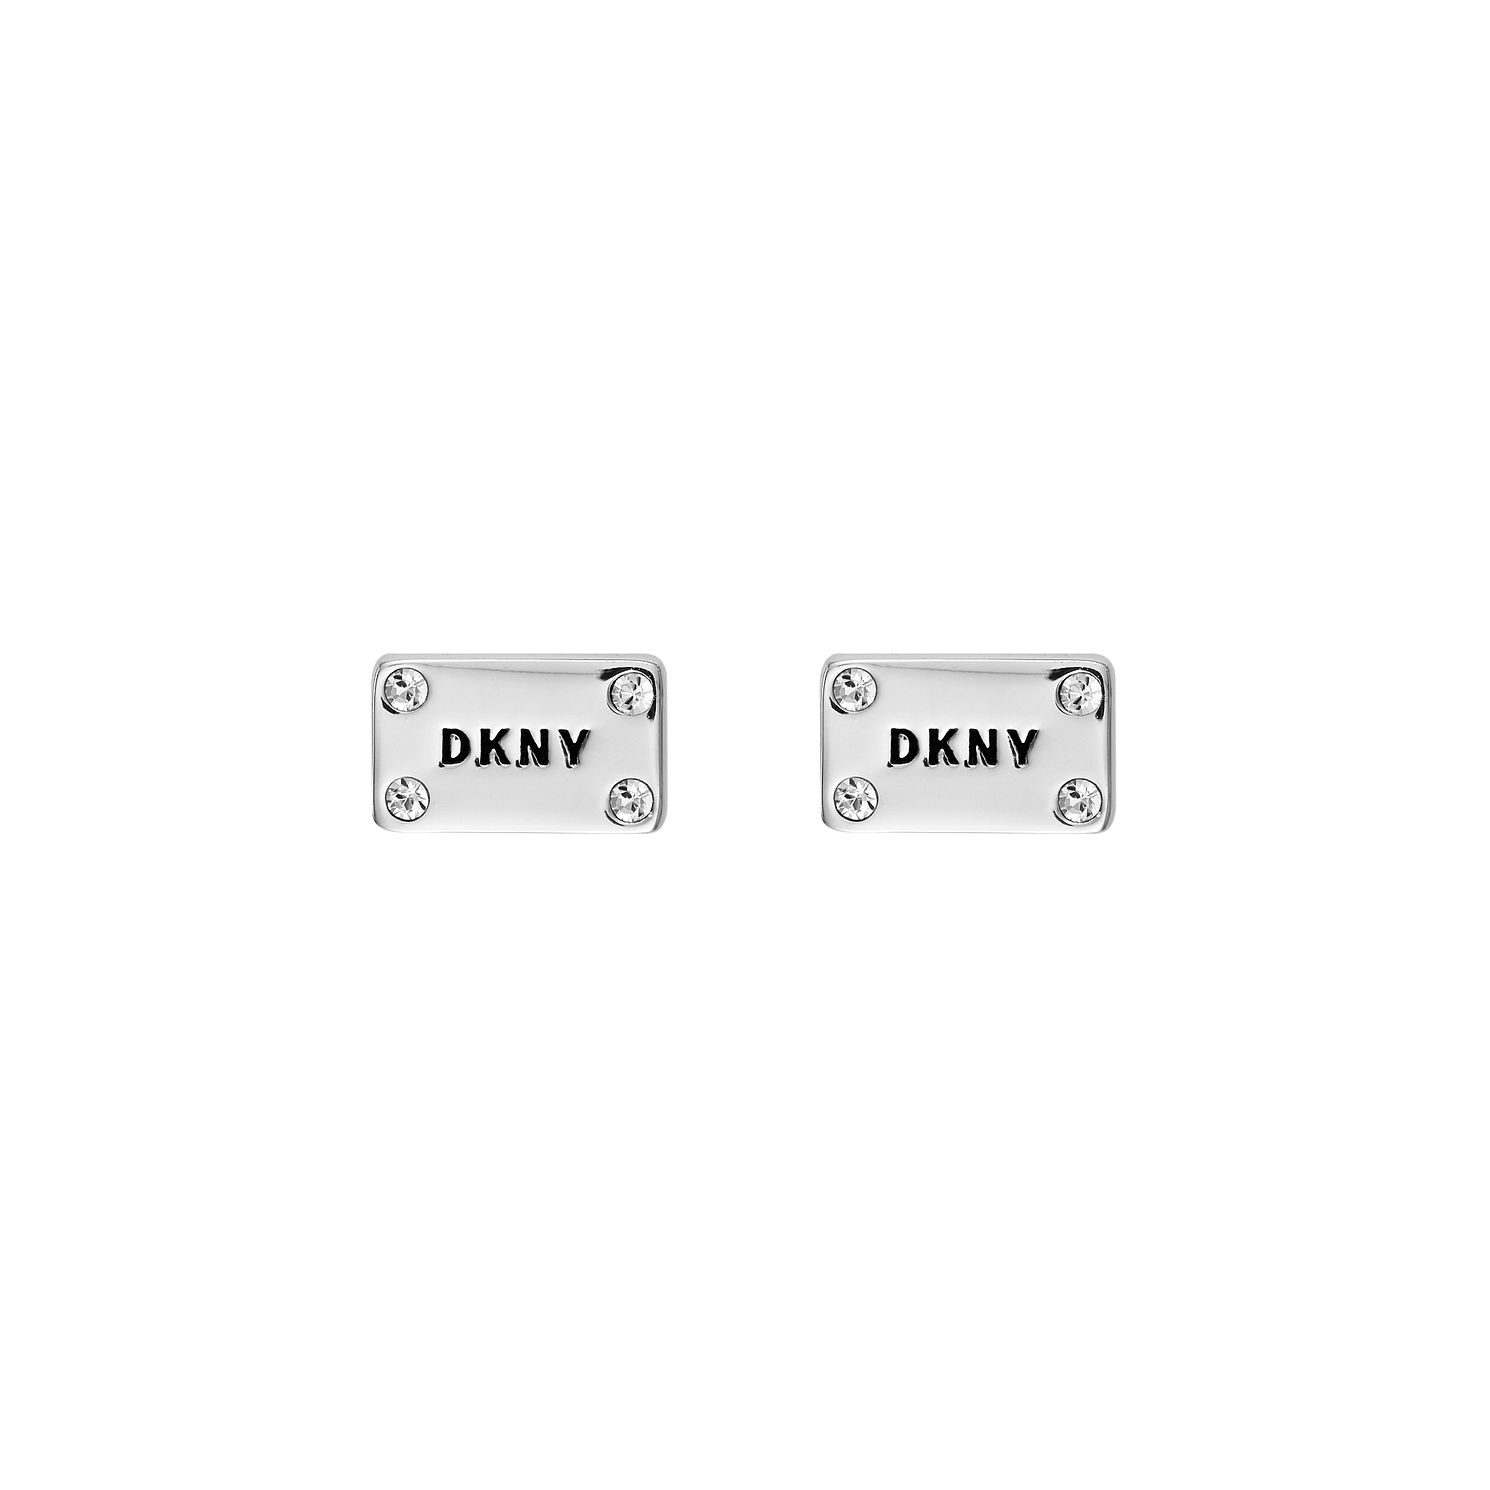 DKNY Logo Plackard Rhodium Plated Crystal Stud Earrings - Product number 5888255